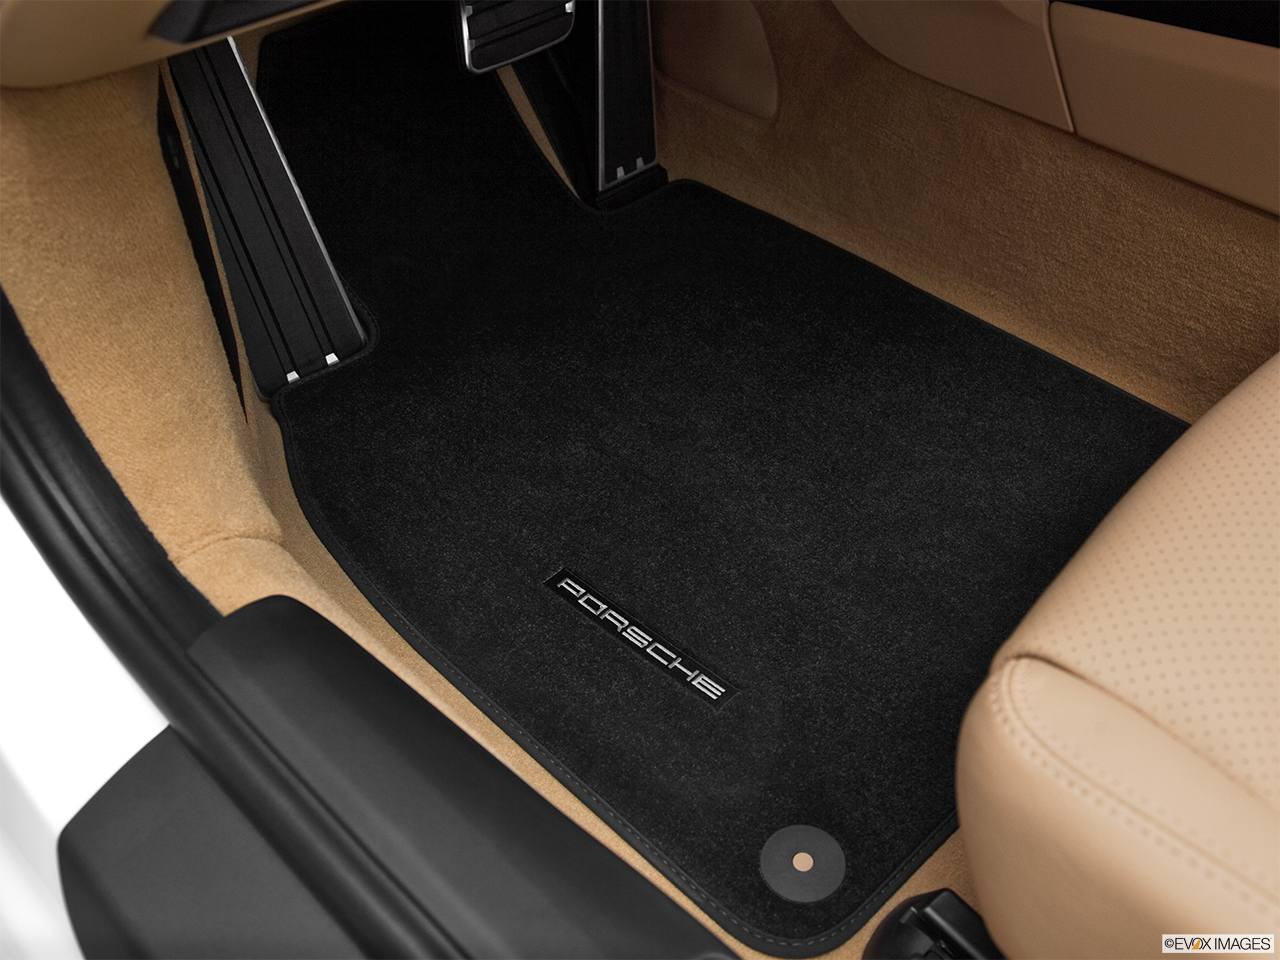 2012 Porsche 911 (991) Carrera S Driver's floor mat and pedals. Mid-seat level from outside looking in.